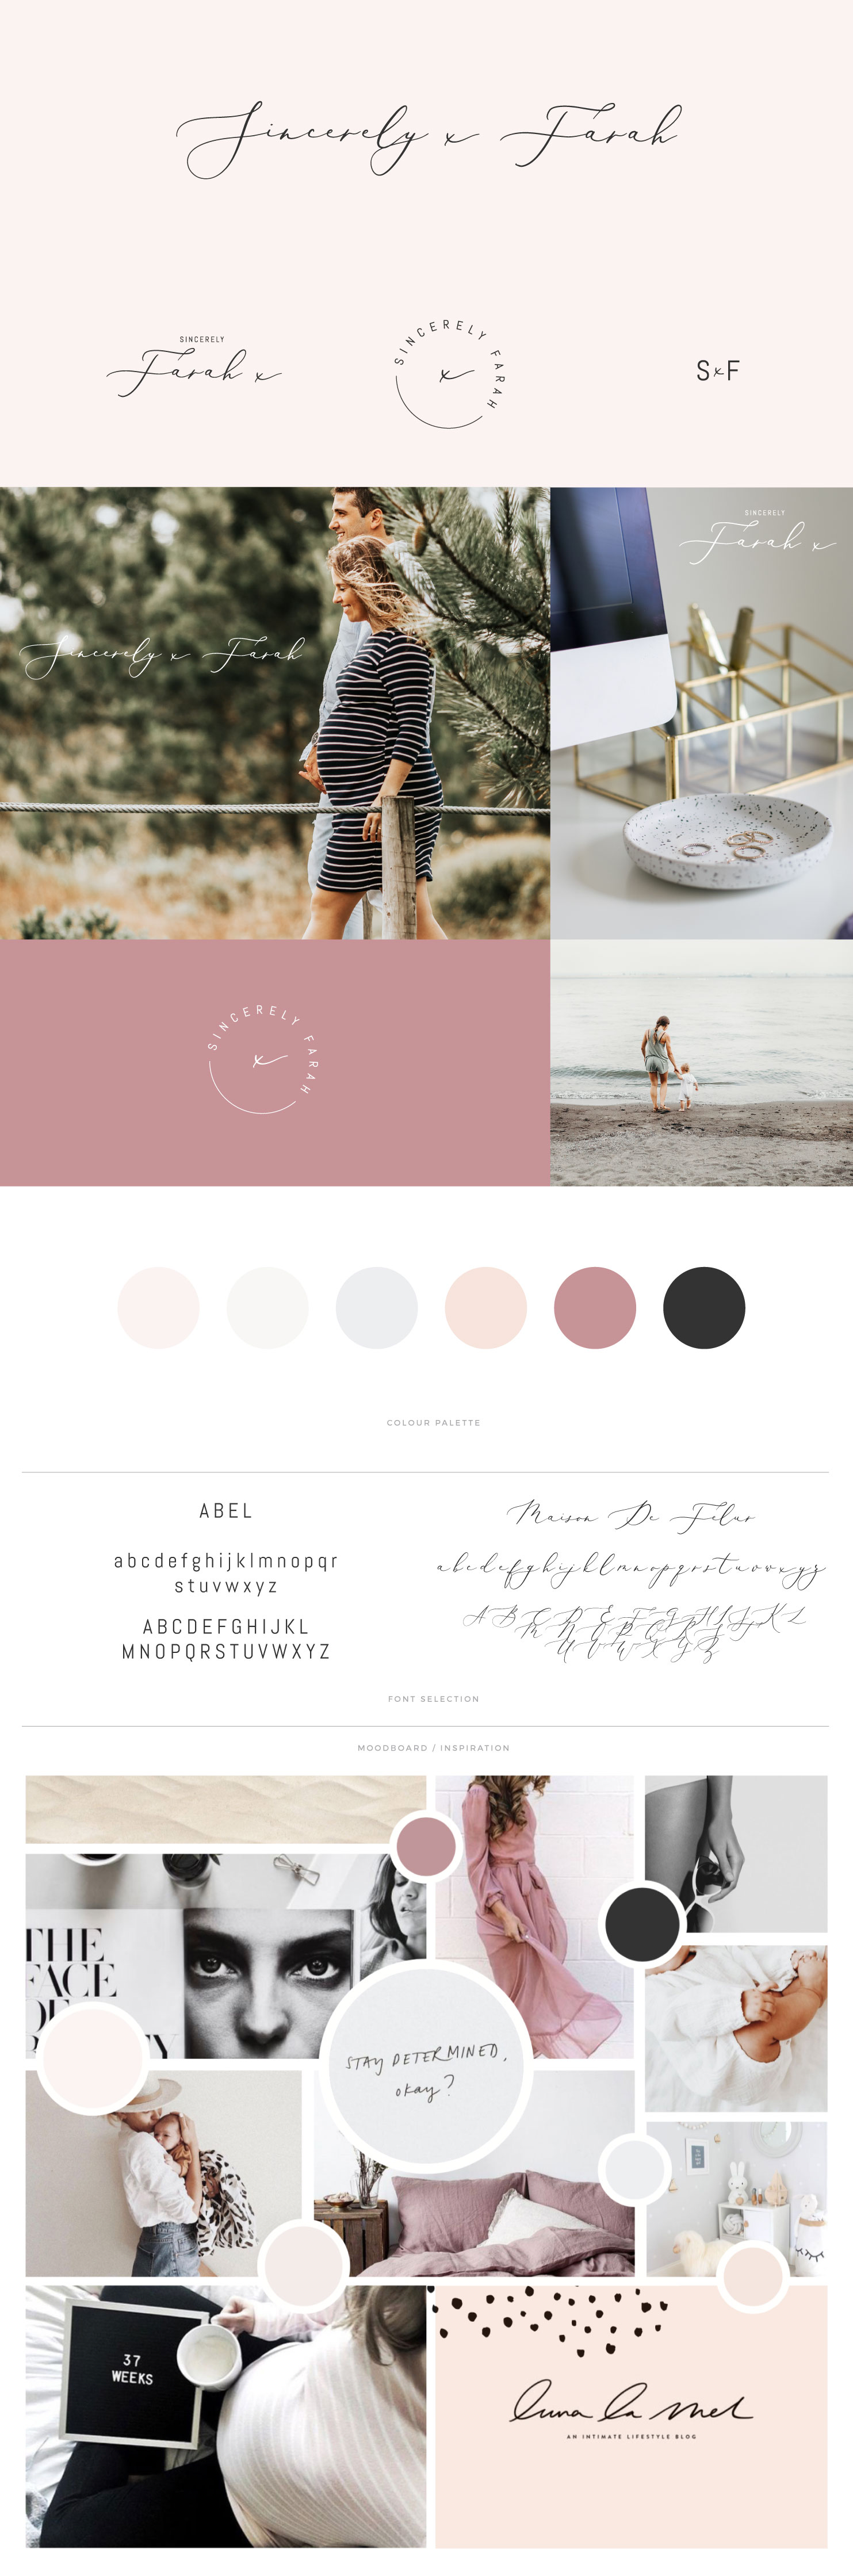 Sincerely x Farah brandboard - by January Made Design